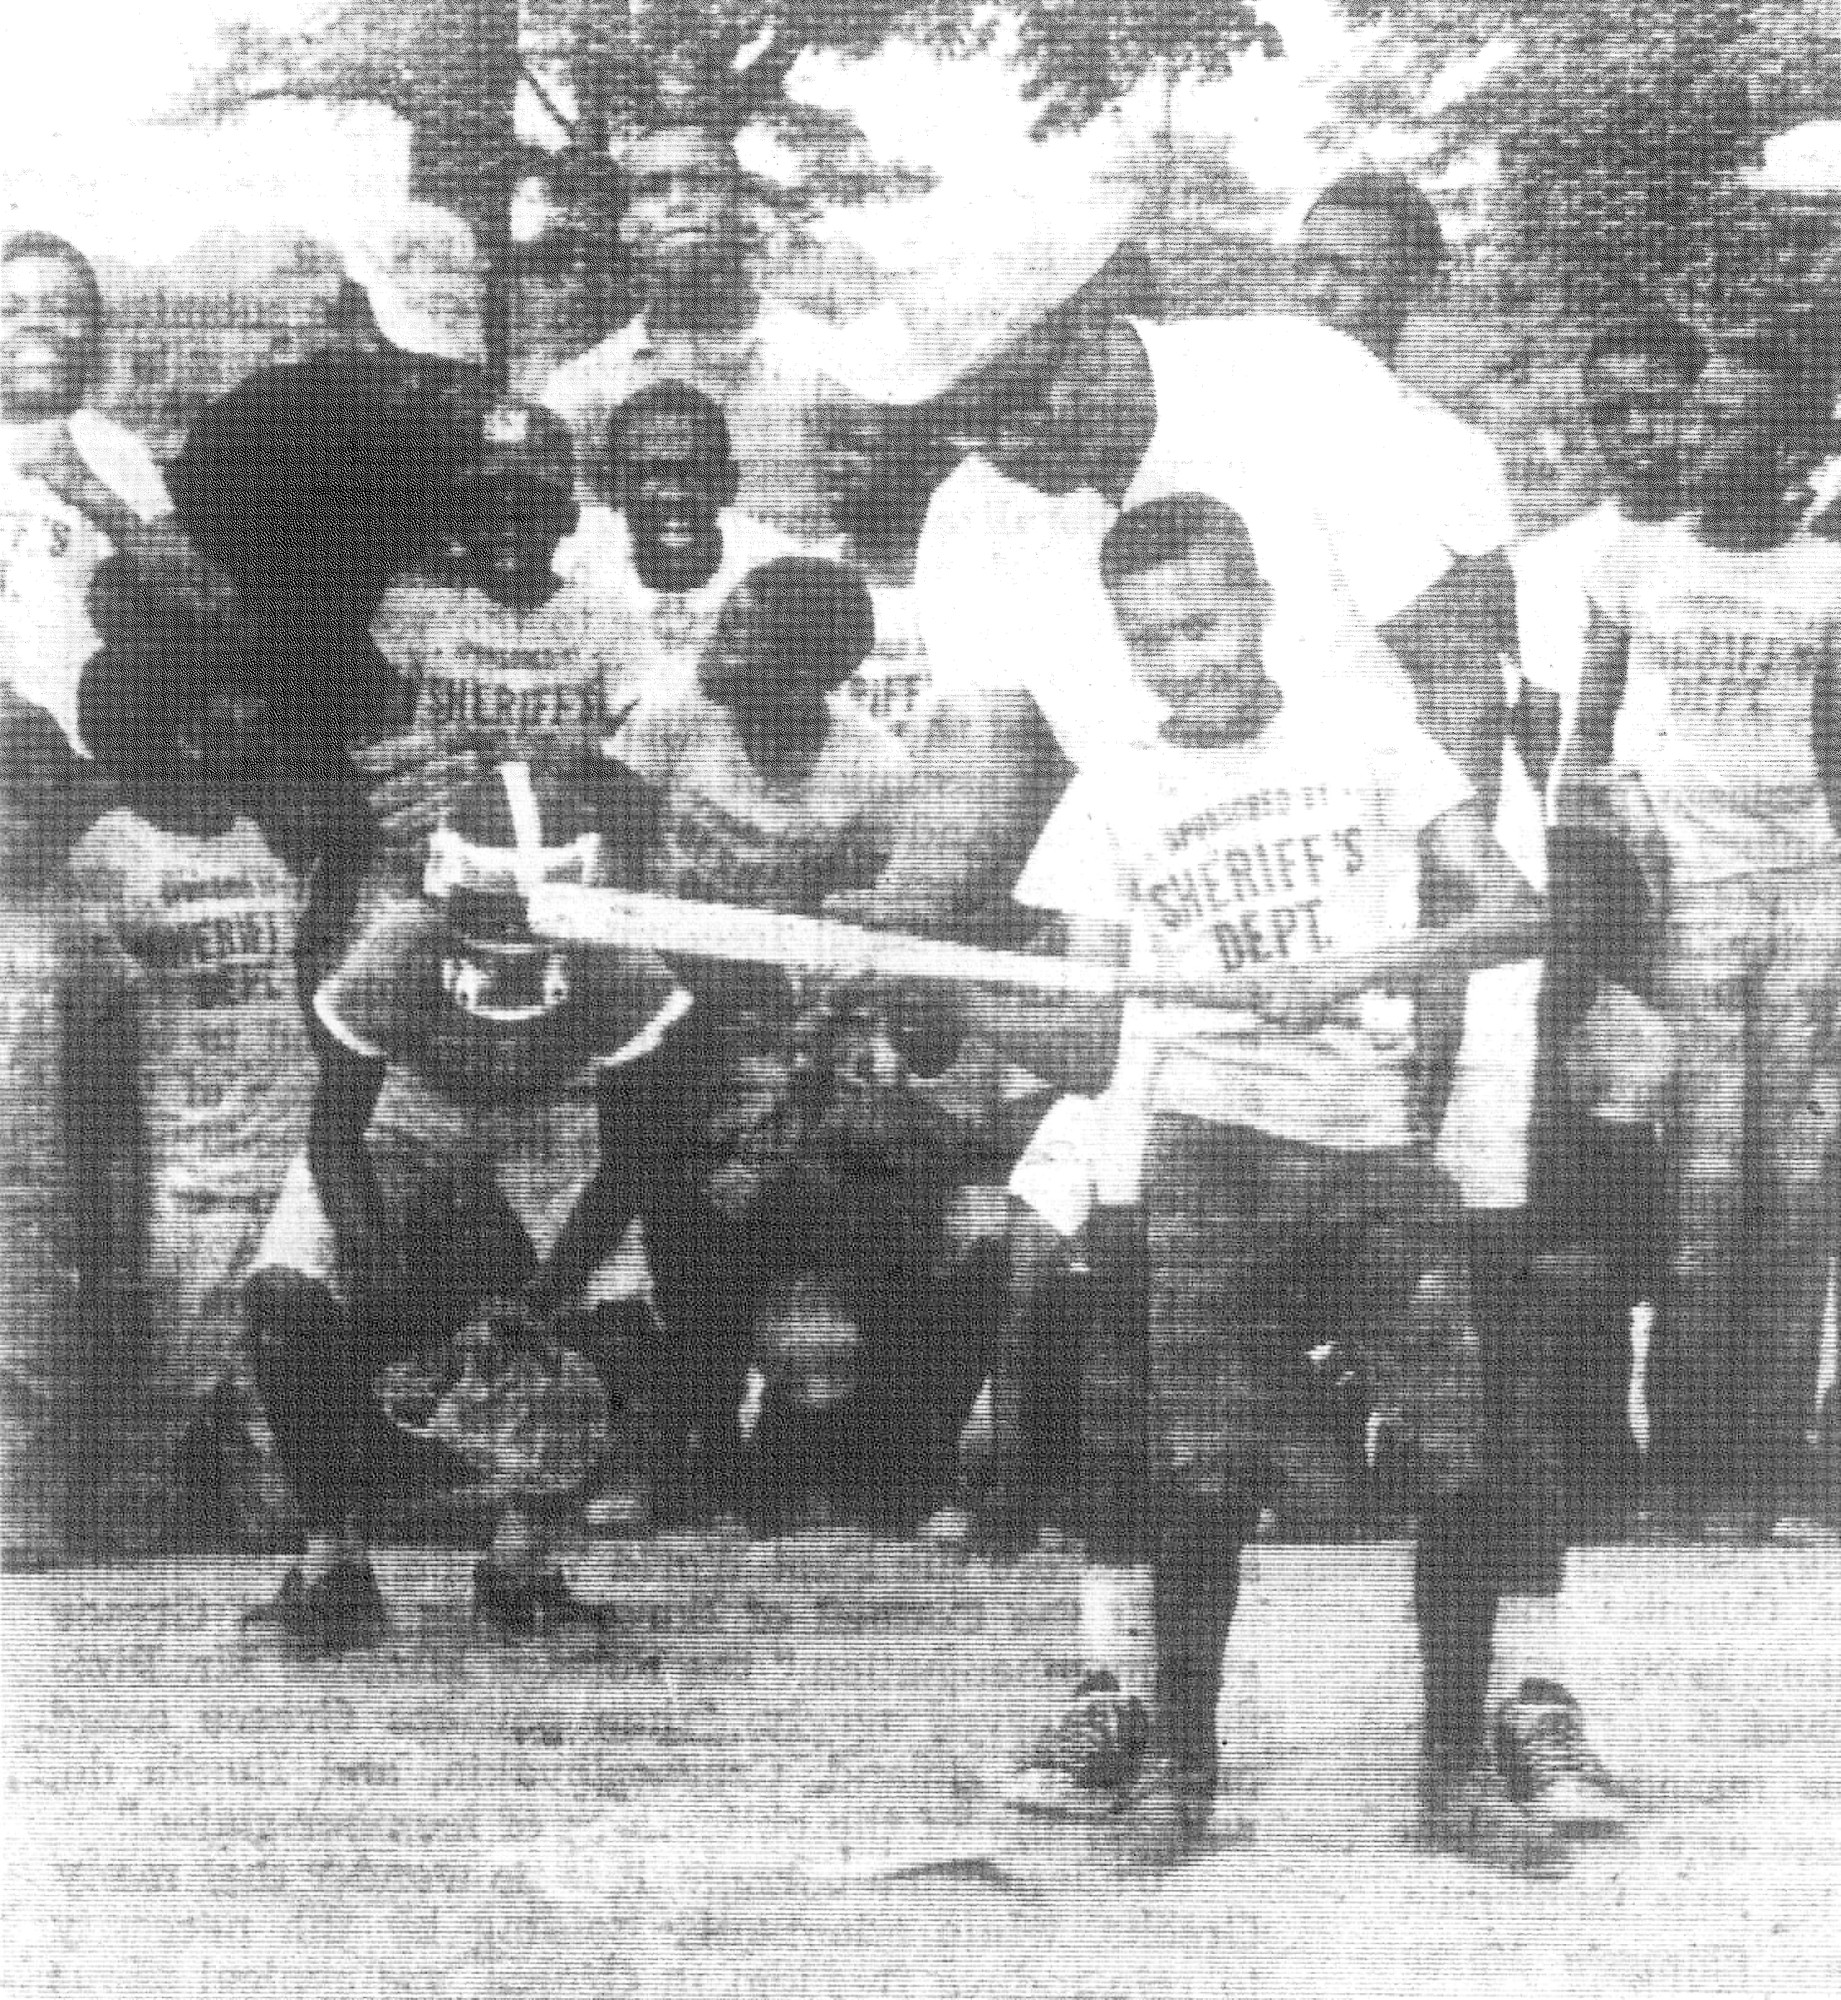 1968 - Coach Robert A. Jenkins instructs Robert Brown on the proper way to bat as other youngsters look on. This was part of the Youth Softball Program at Stonehill sponsored by the sheriff's department.